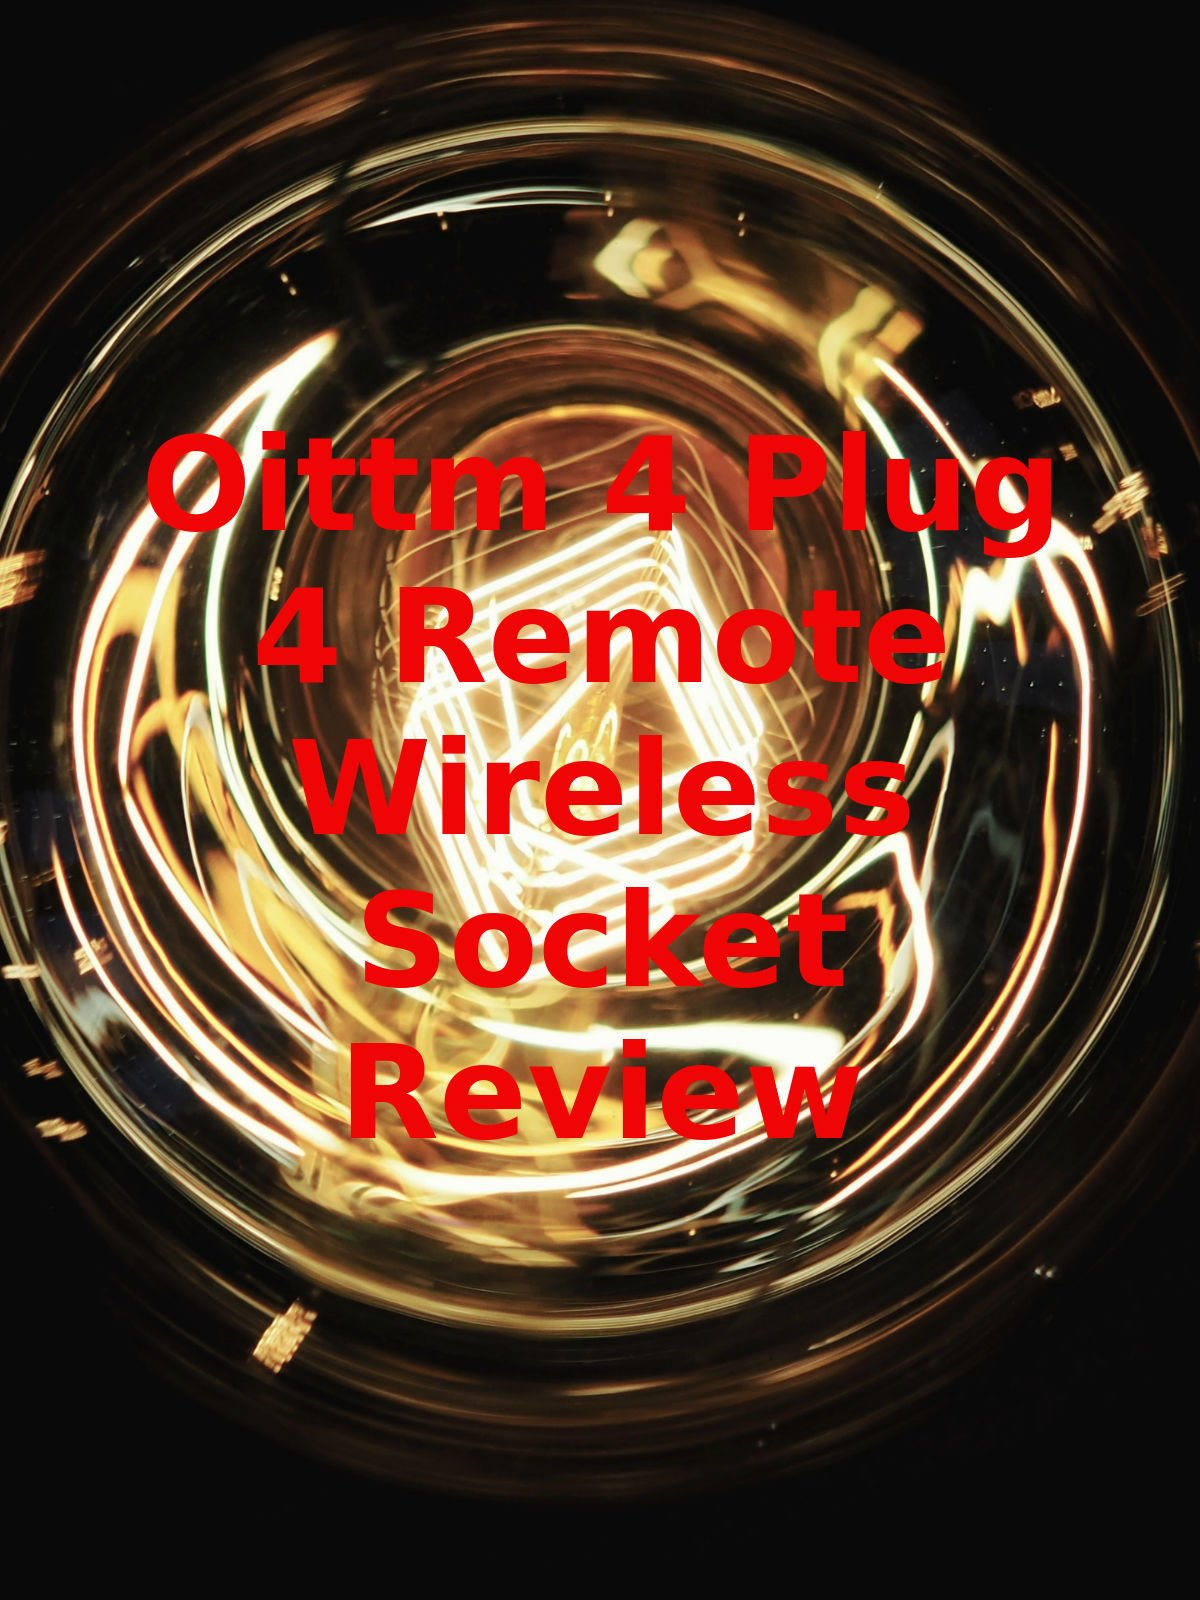 Review: Oittm 4 Plug 4 Remote Wireless Socket Review